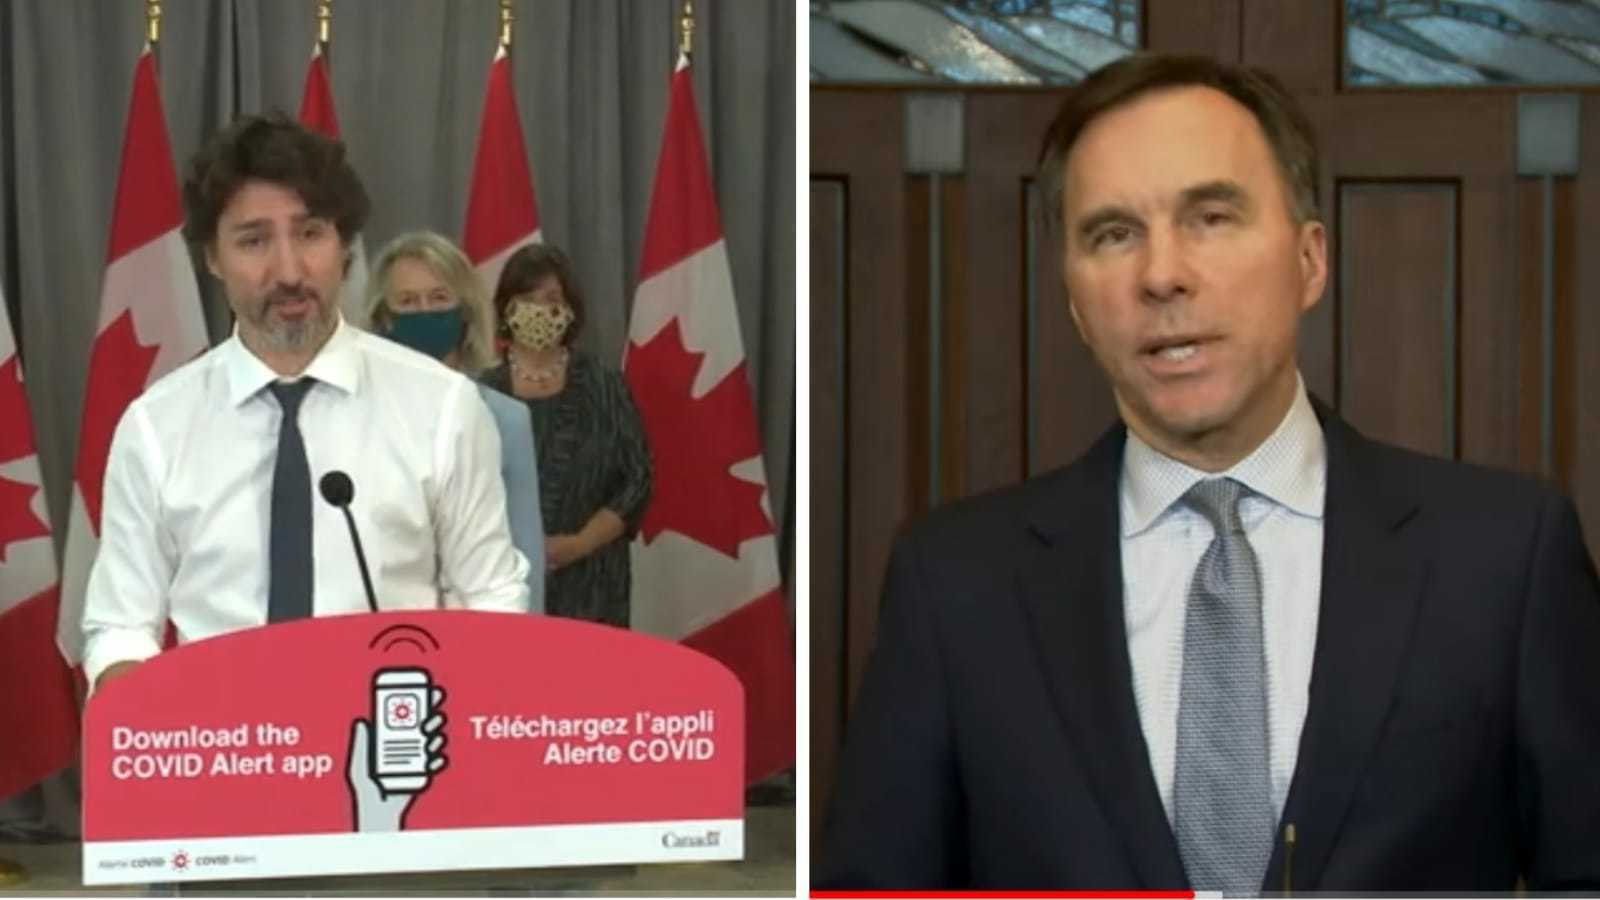 BREAKING: Liberal Finance Minister Bill Morneau resigns